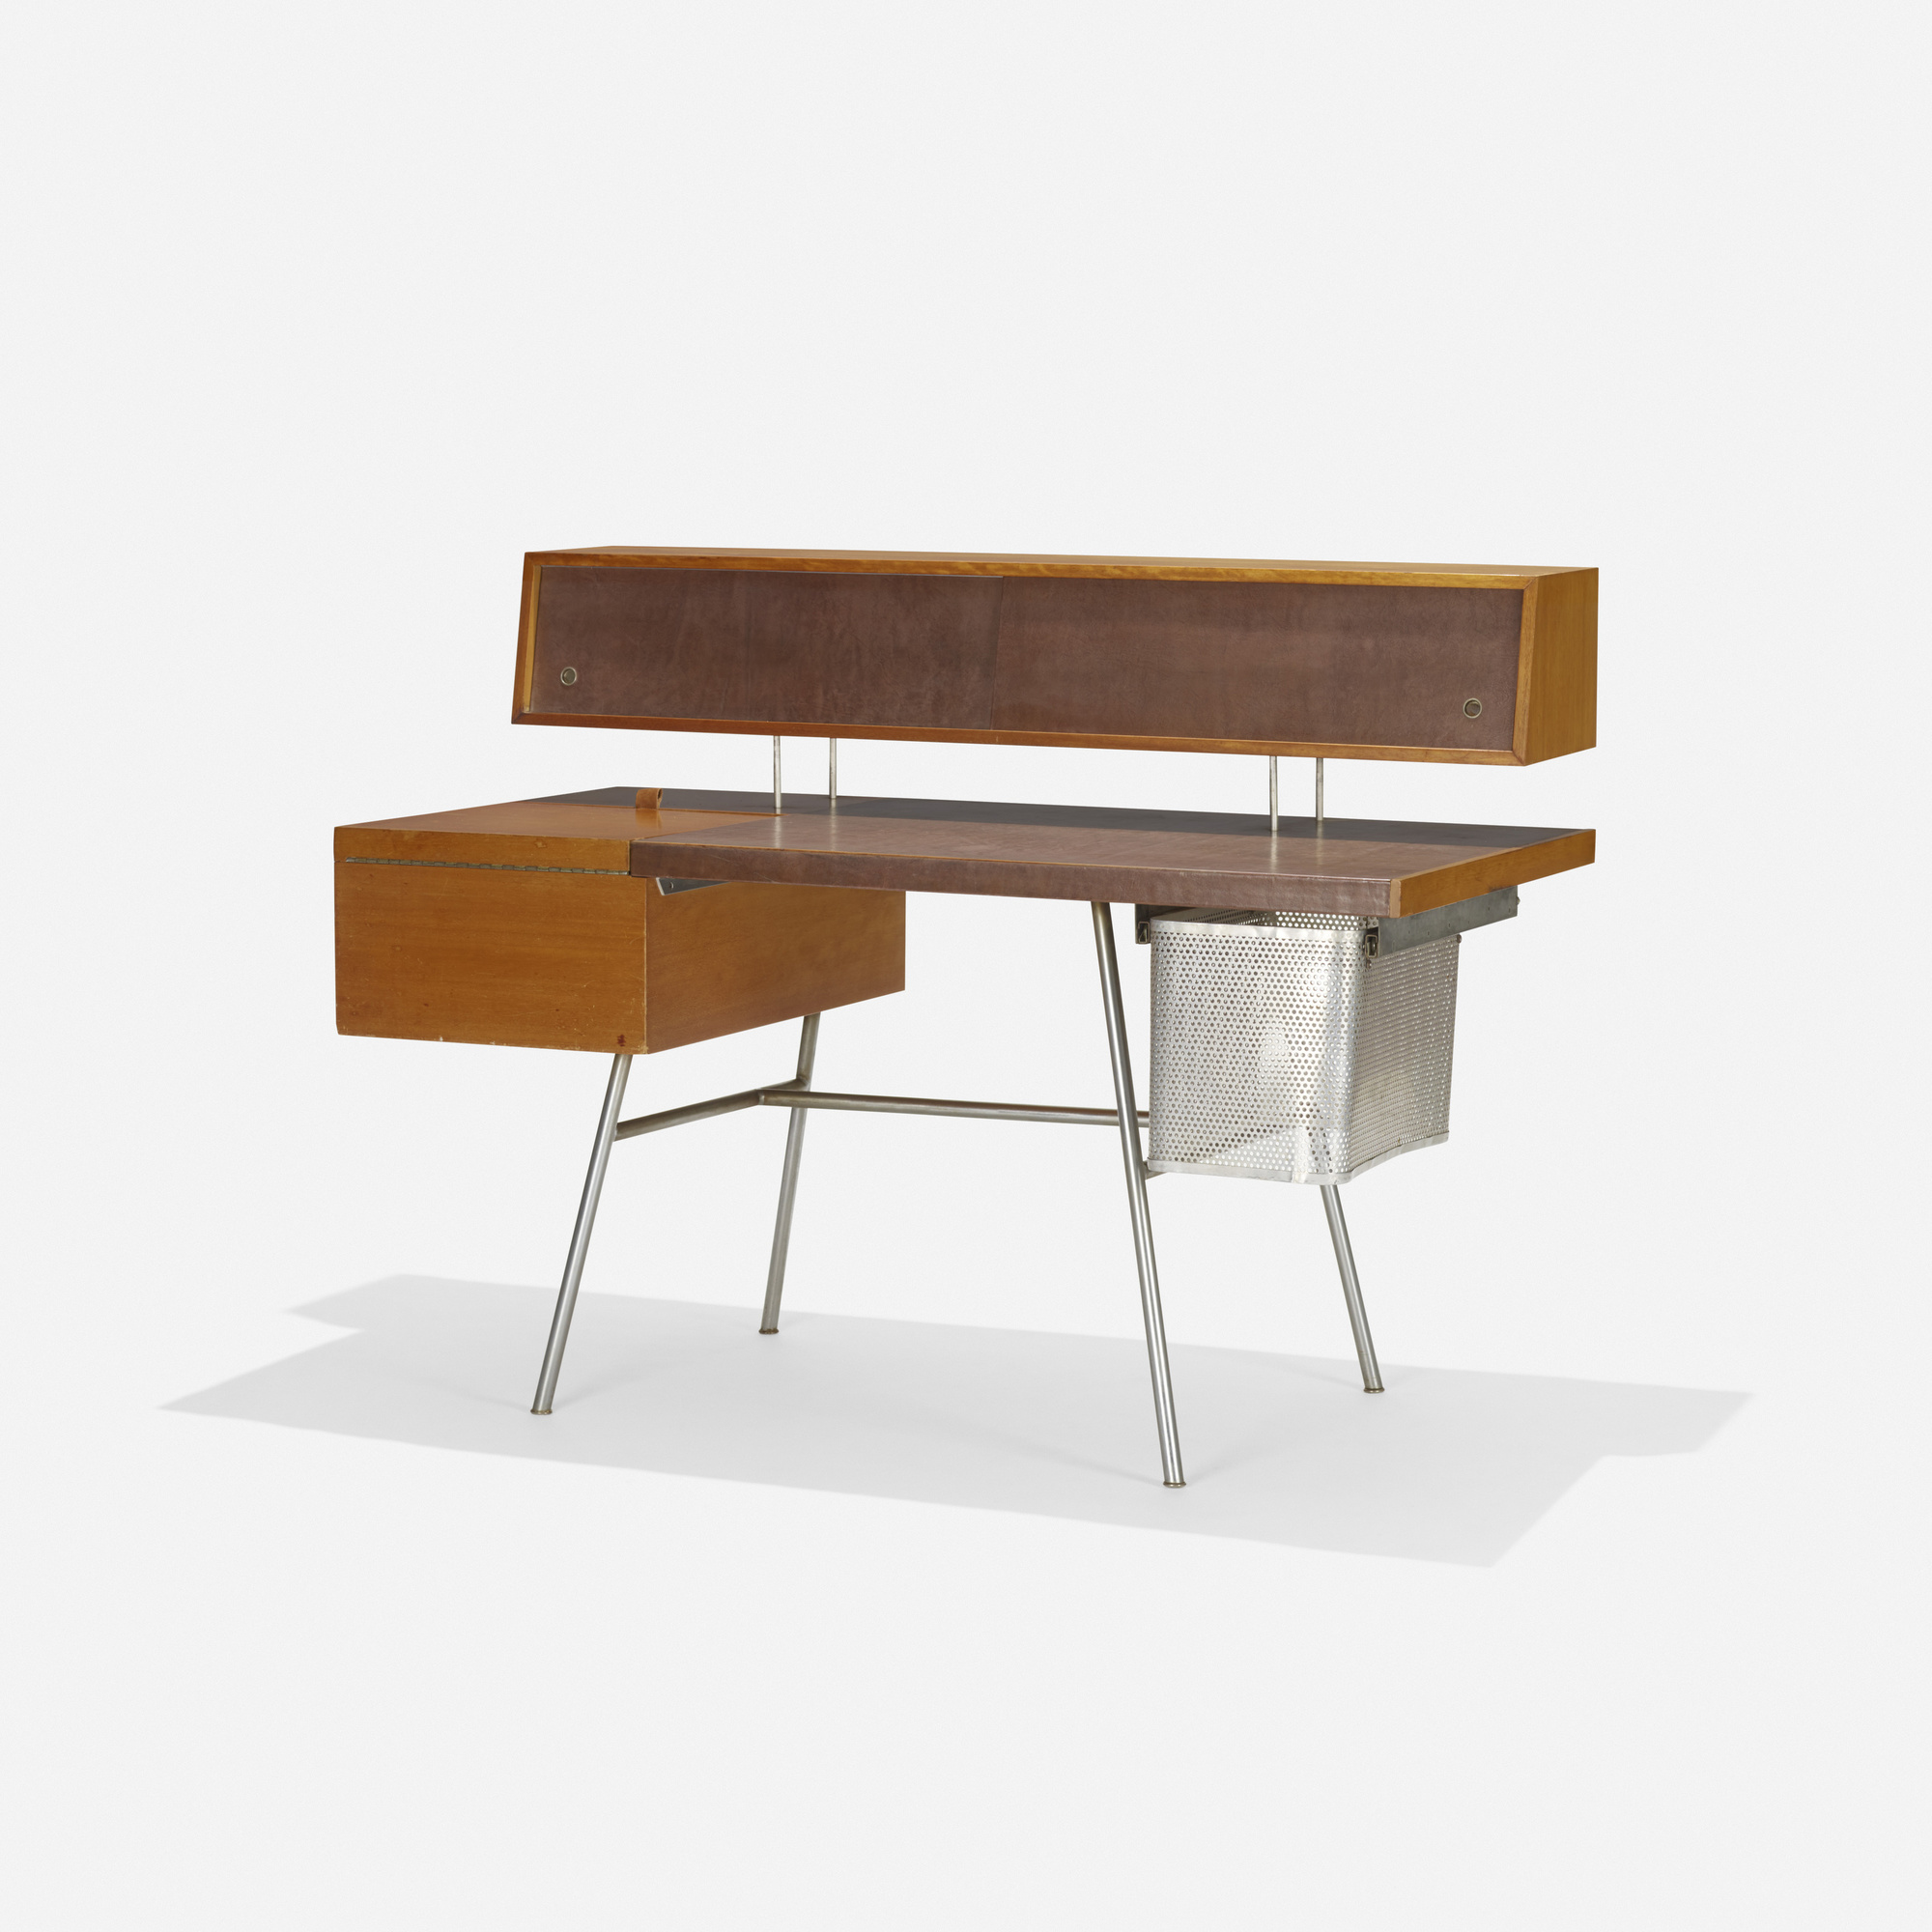 Ivchic 128 George Nelson Associates Home Office Desk Model 4658 2 Of 3 Topbestspec 128 George Nelson Associates Home Office Desk Model 4658